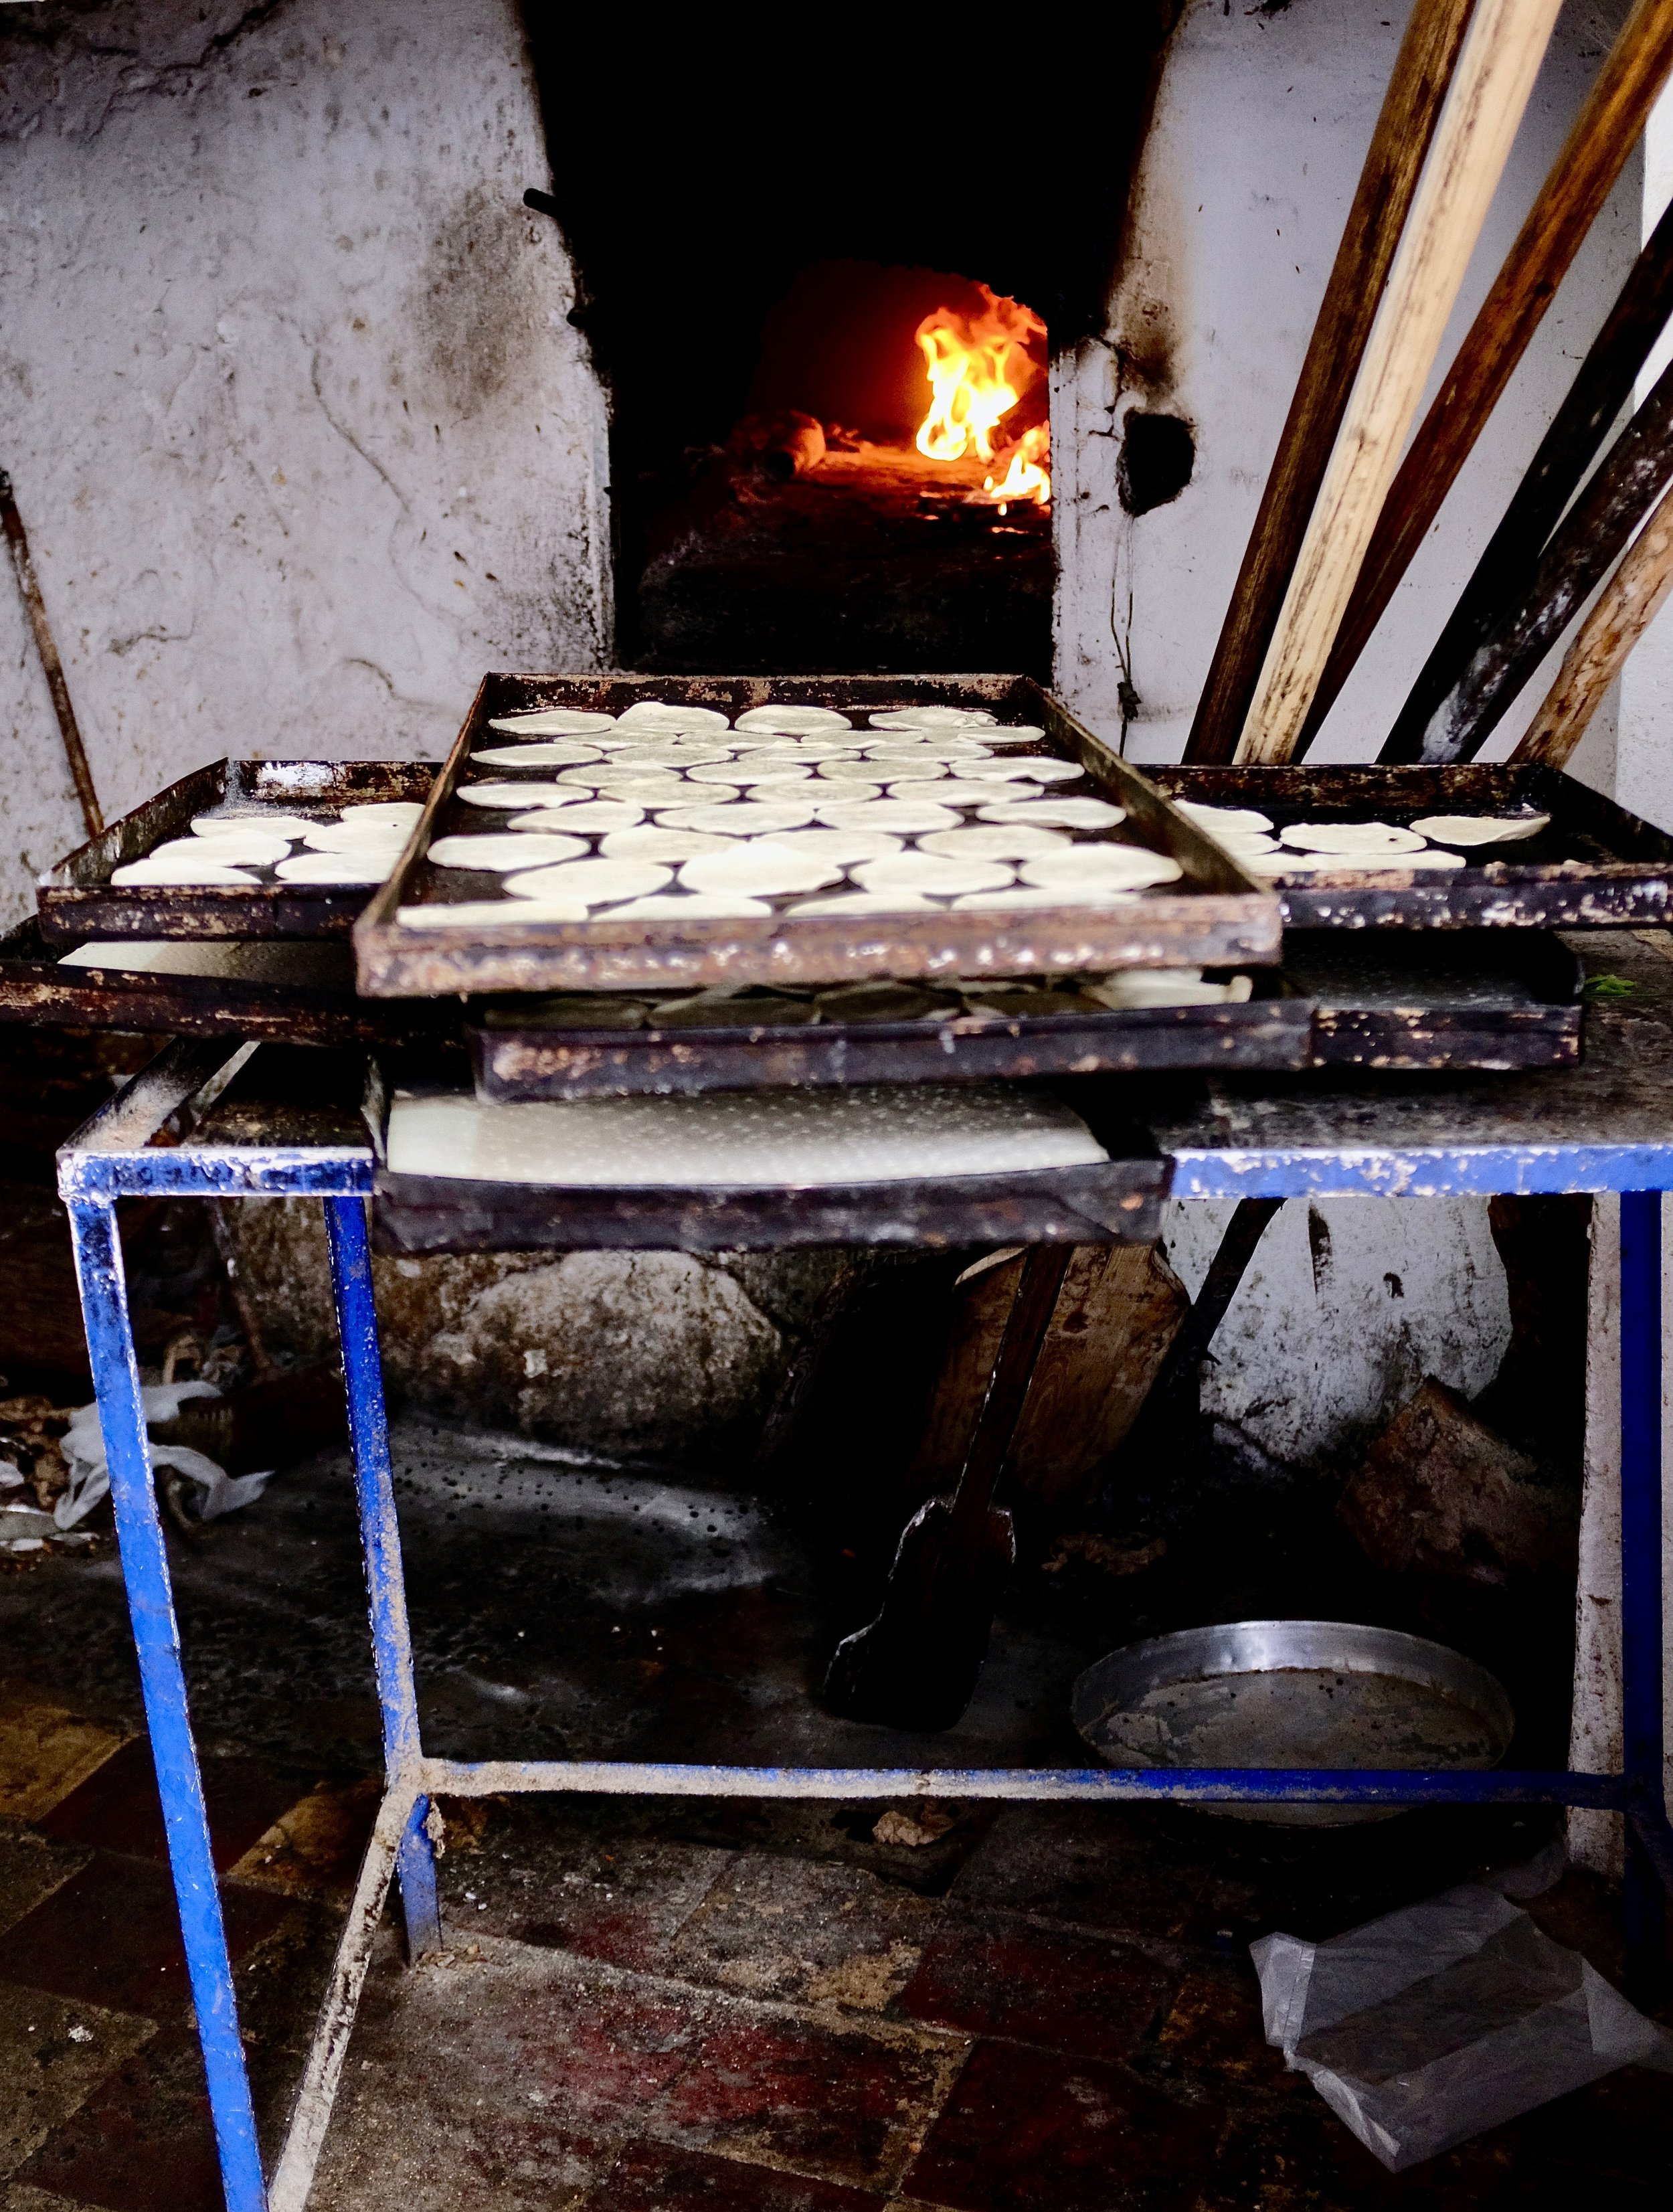 Moroccan pastries getting ready to be baked in a communal oven in Chefchaouen, Morocco.